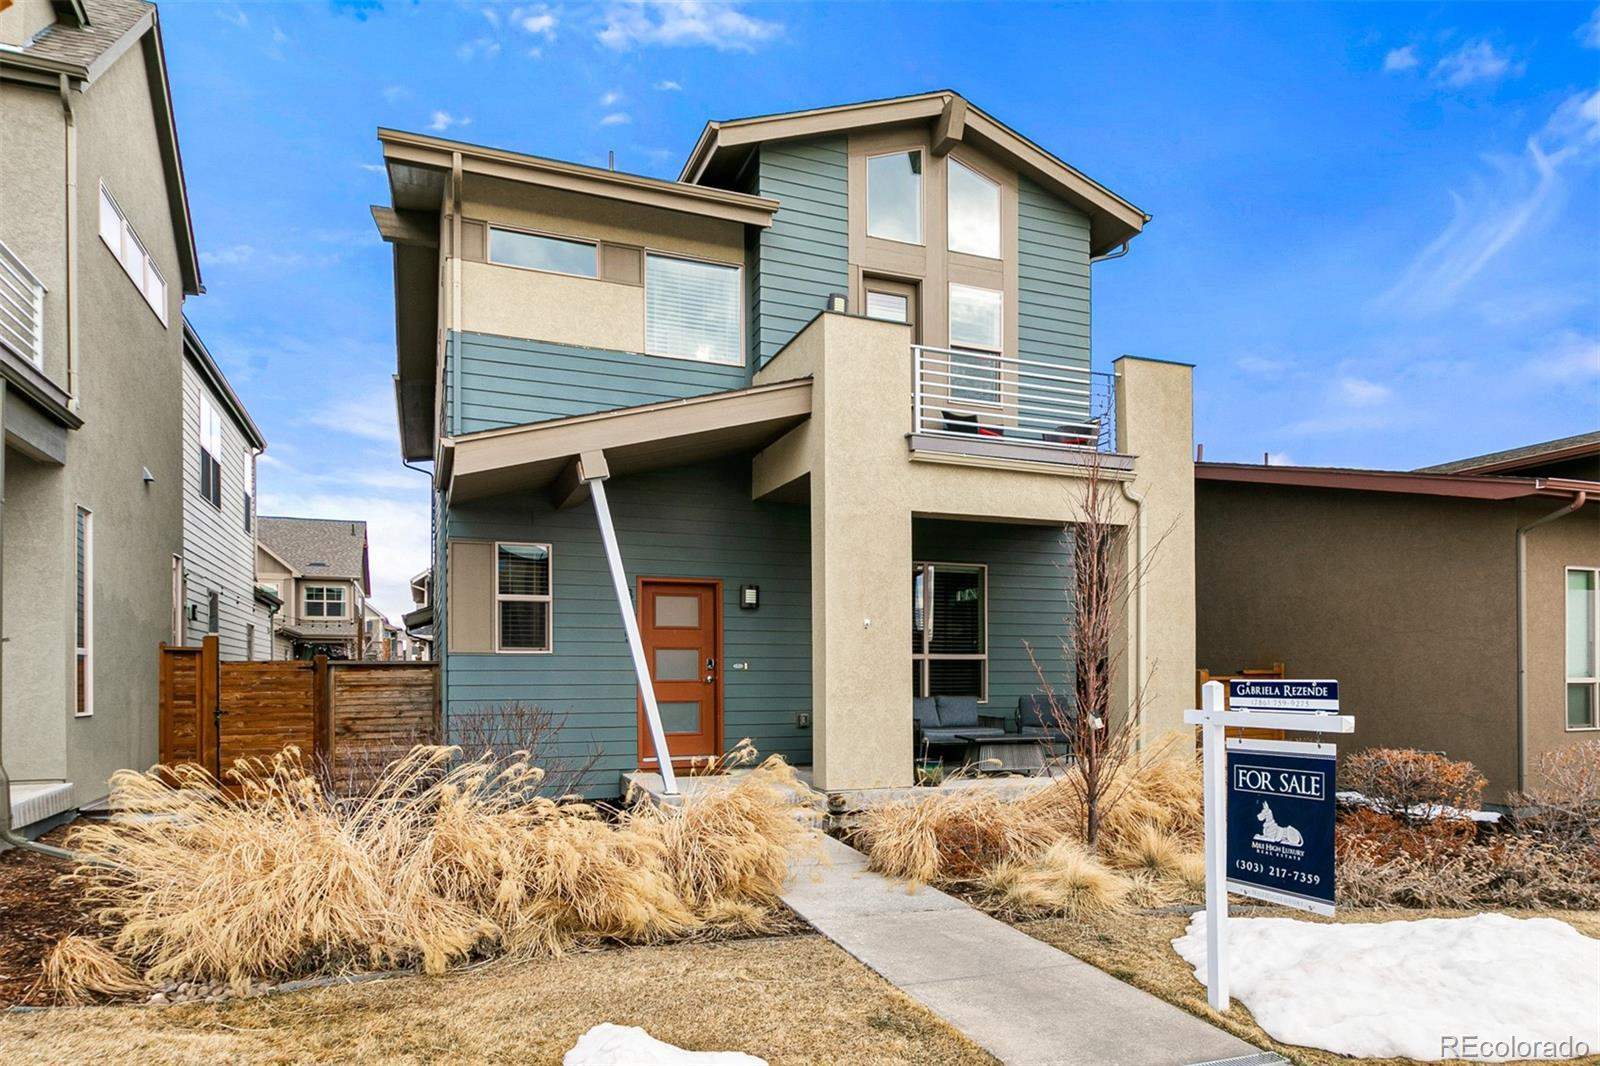 8715 E 55th Avenue, Denver, CO 80238 - #: 6695928